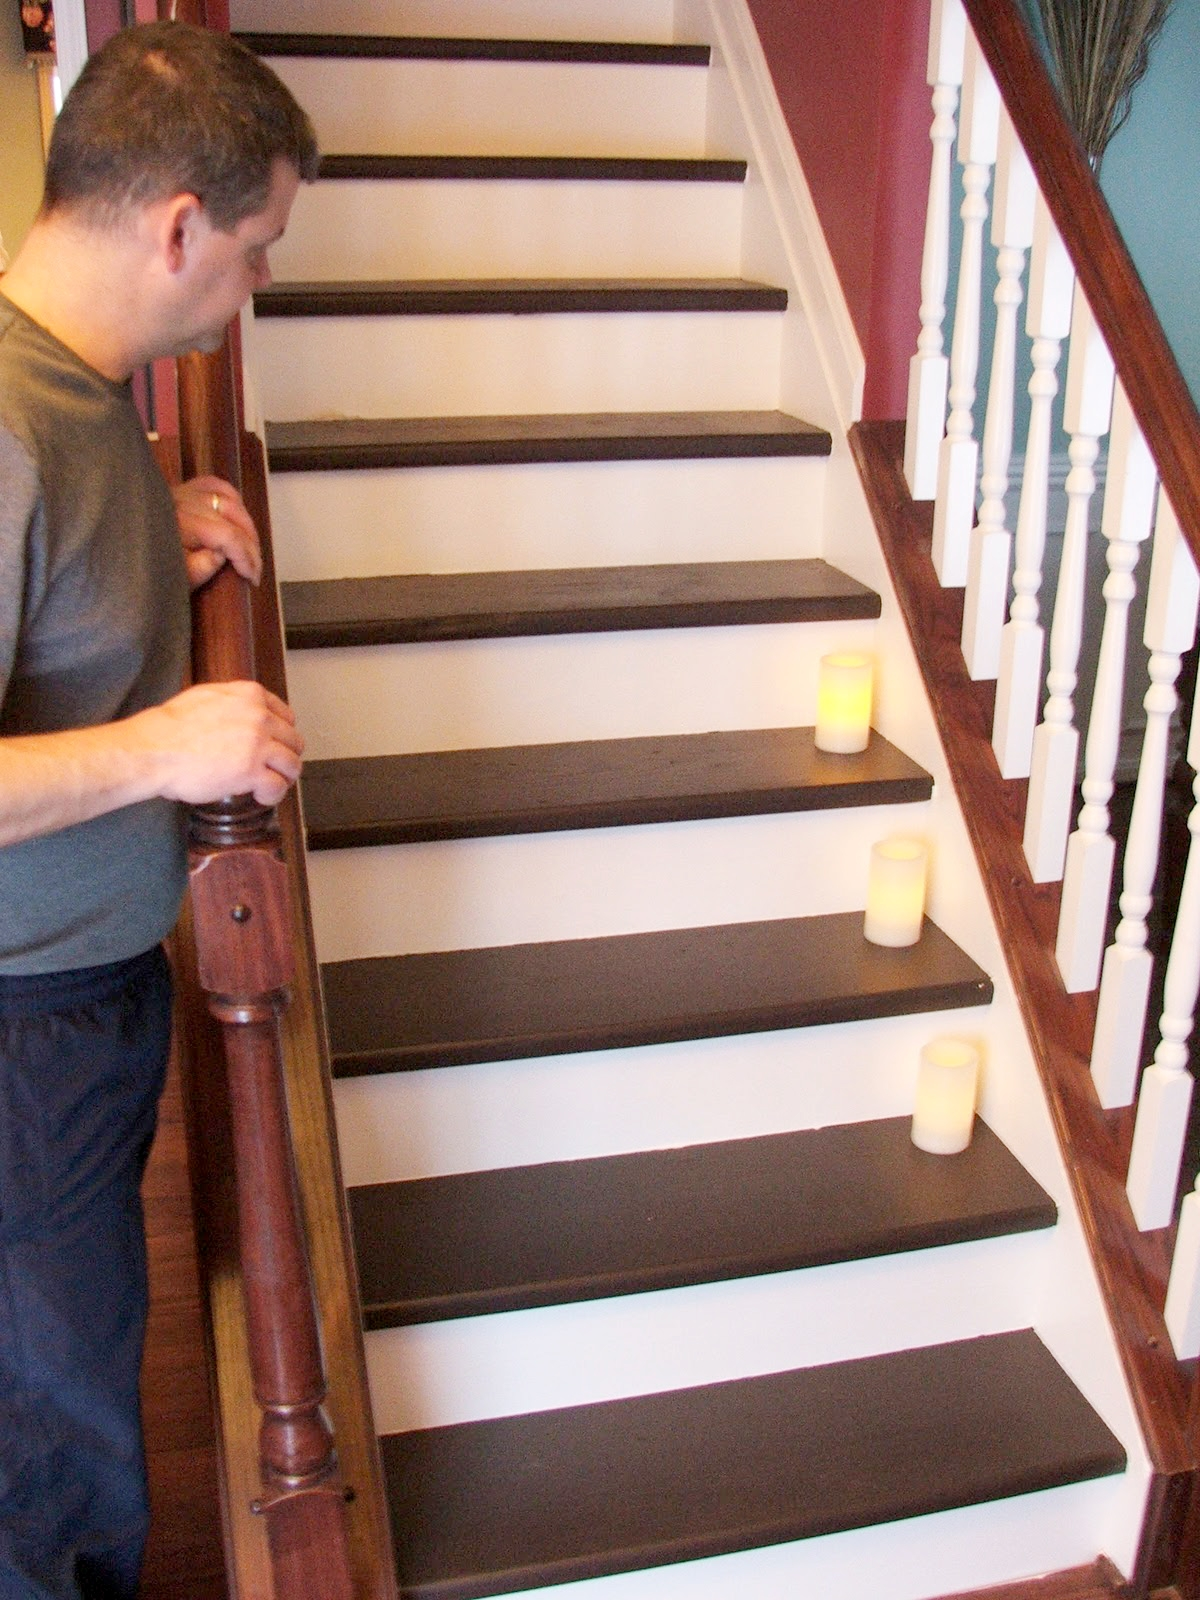 Remodelaholic Under 100 Carpeted Stair To Wooden Tread Makeover Diy Throughout Carpet For Wood Stairs (#15 of 20)